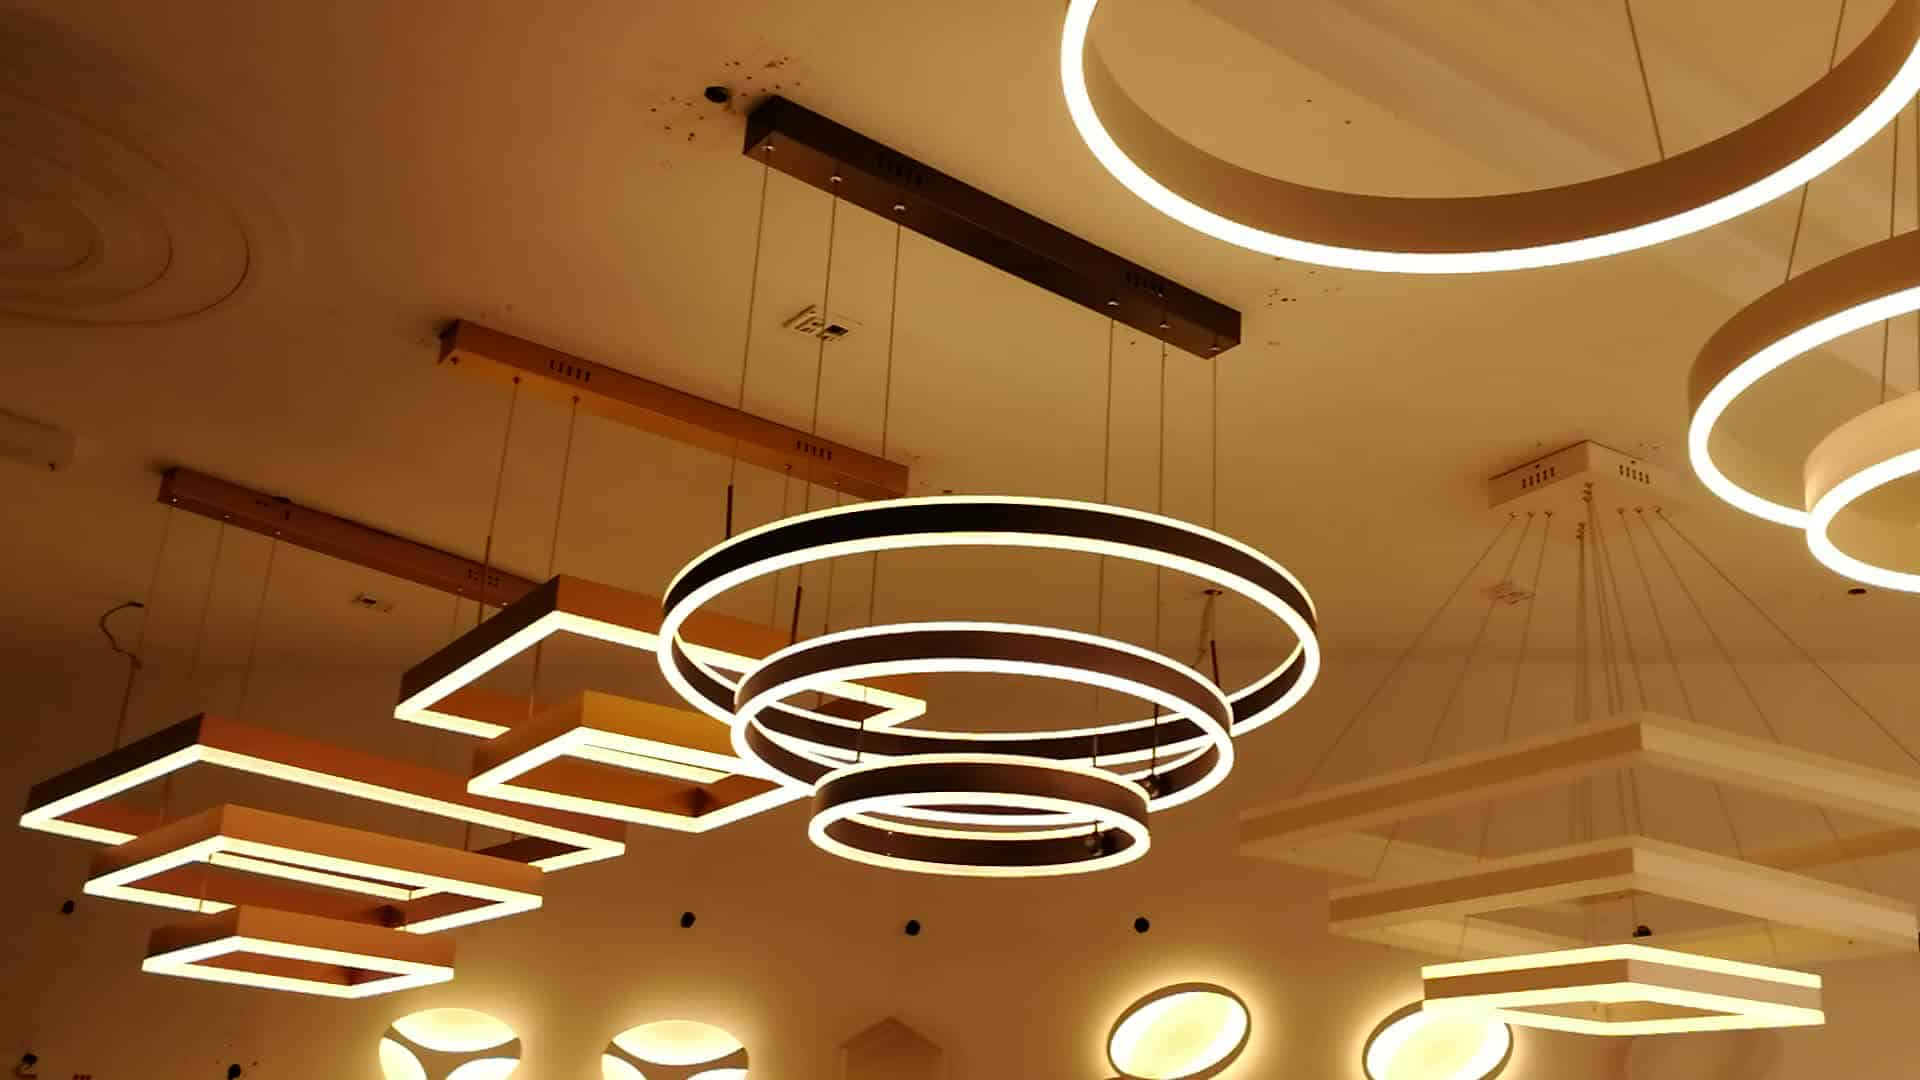 Top 15 Trends In Light Fixtures 2021 To Use In Your Home Decor